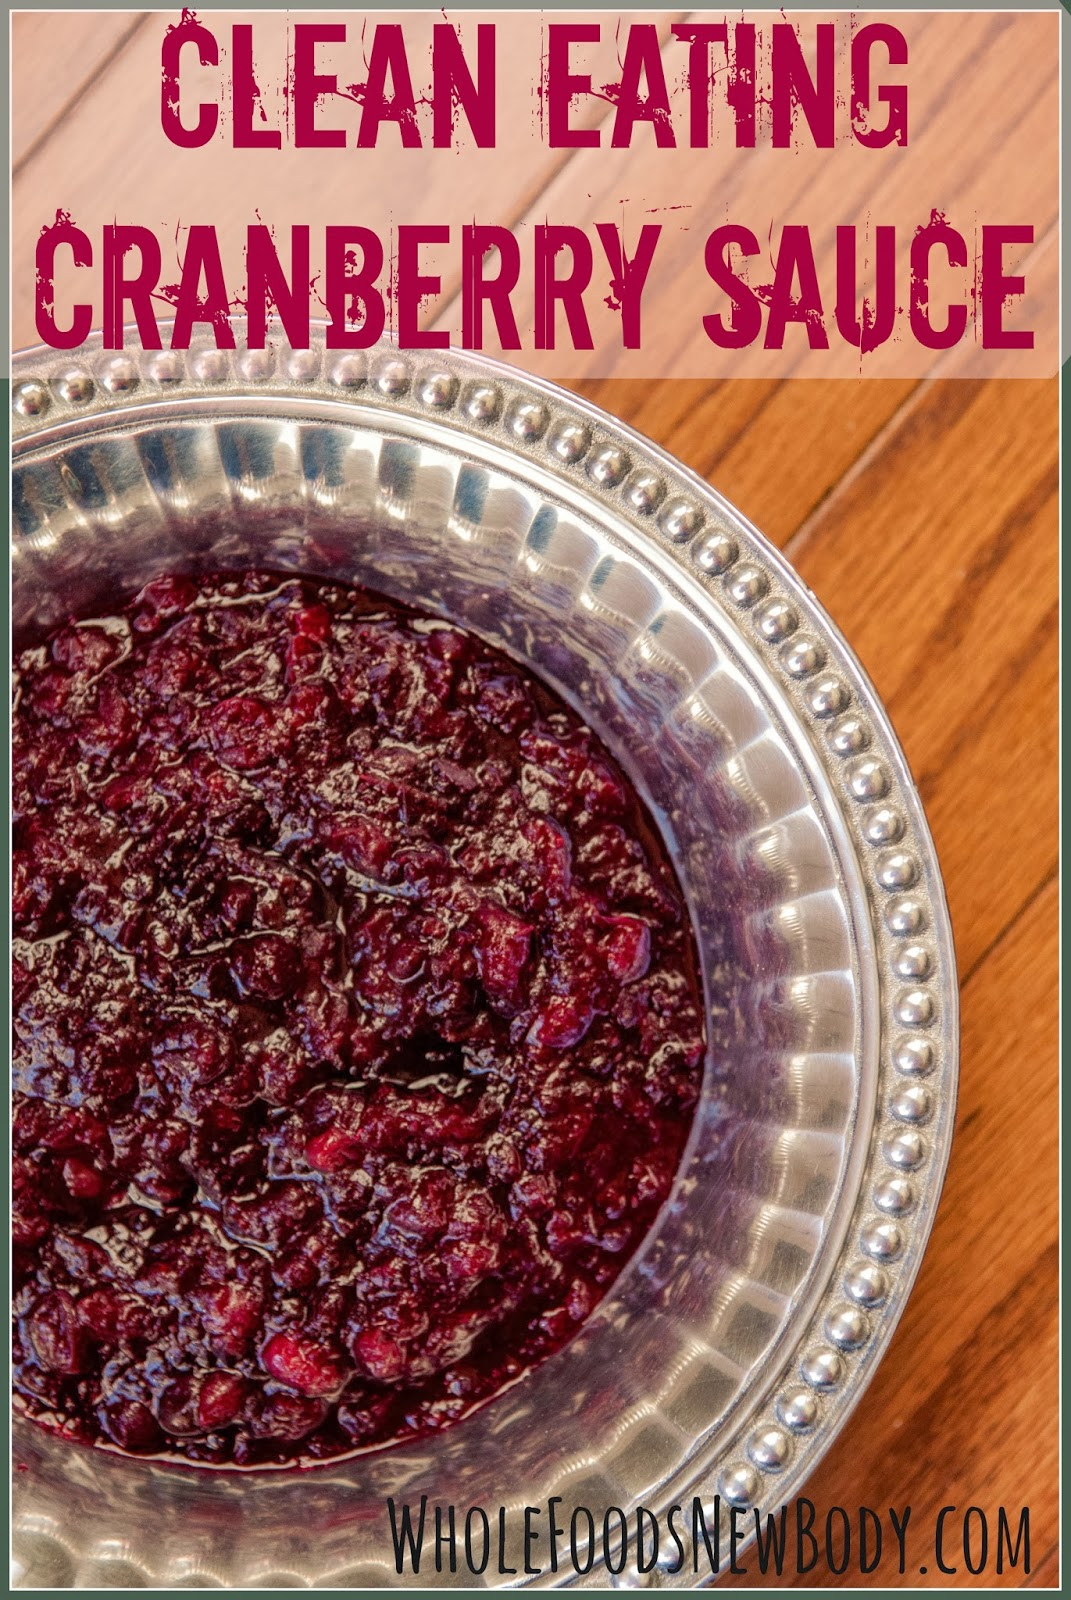 Raw Cranberry Juice Whole Foods